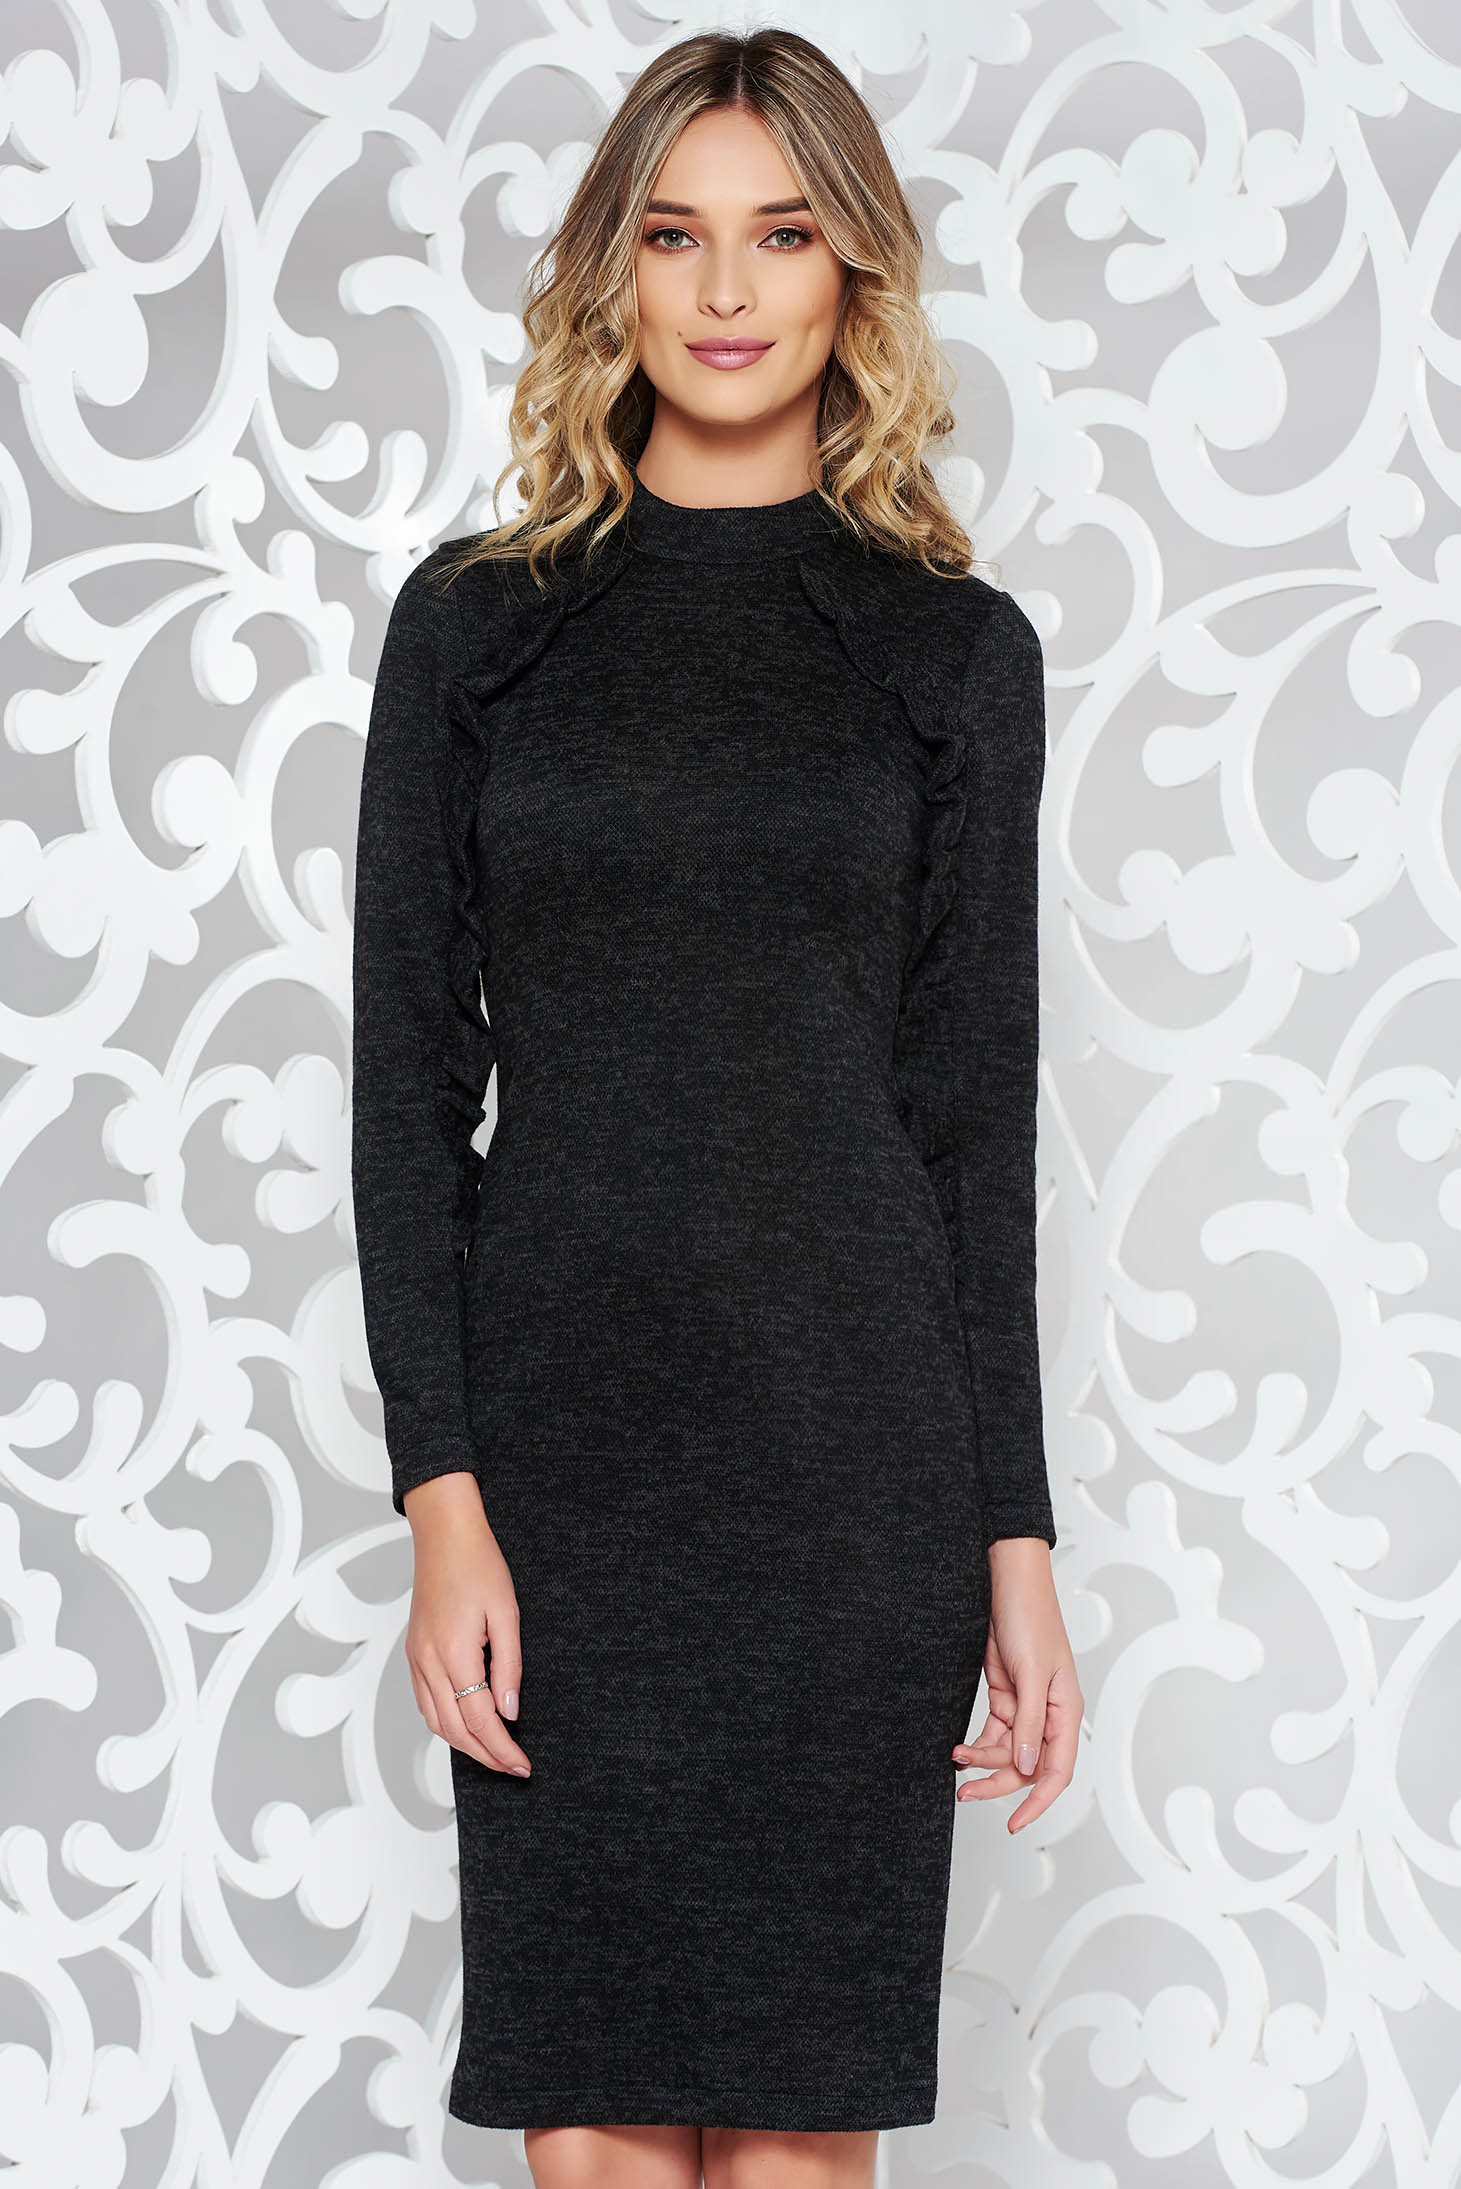 StarShinerS black daily dress with tented cut knitted fabric with ruffle details